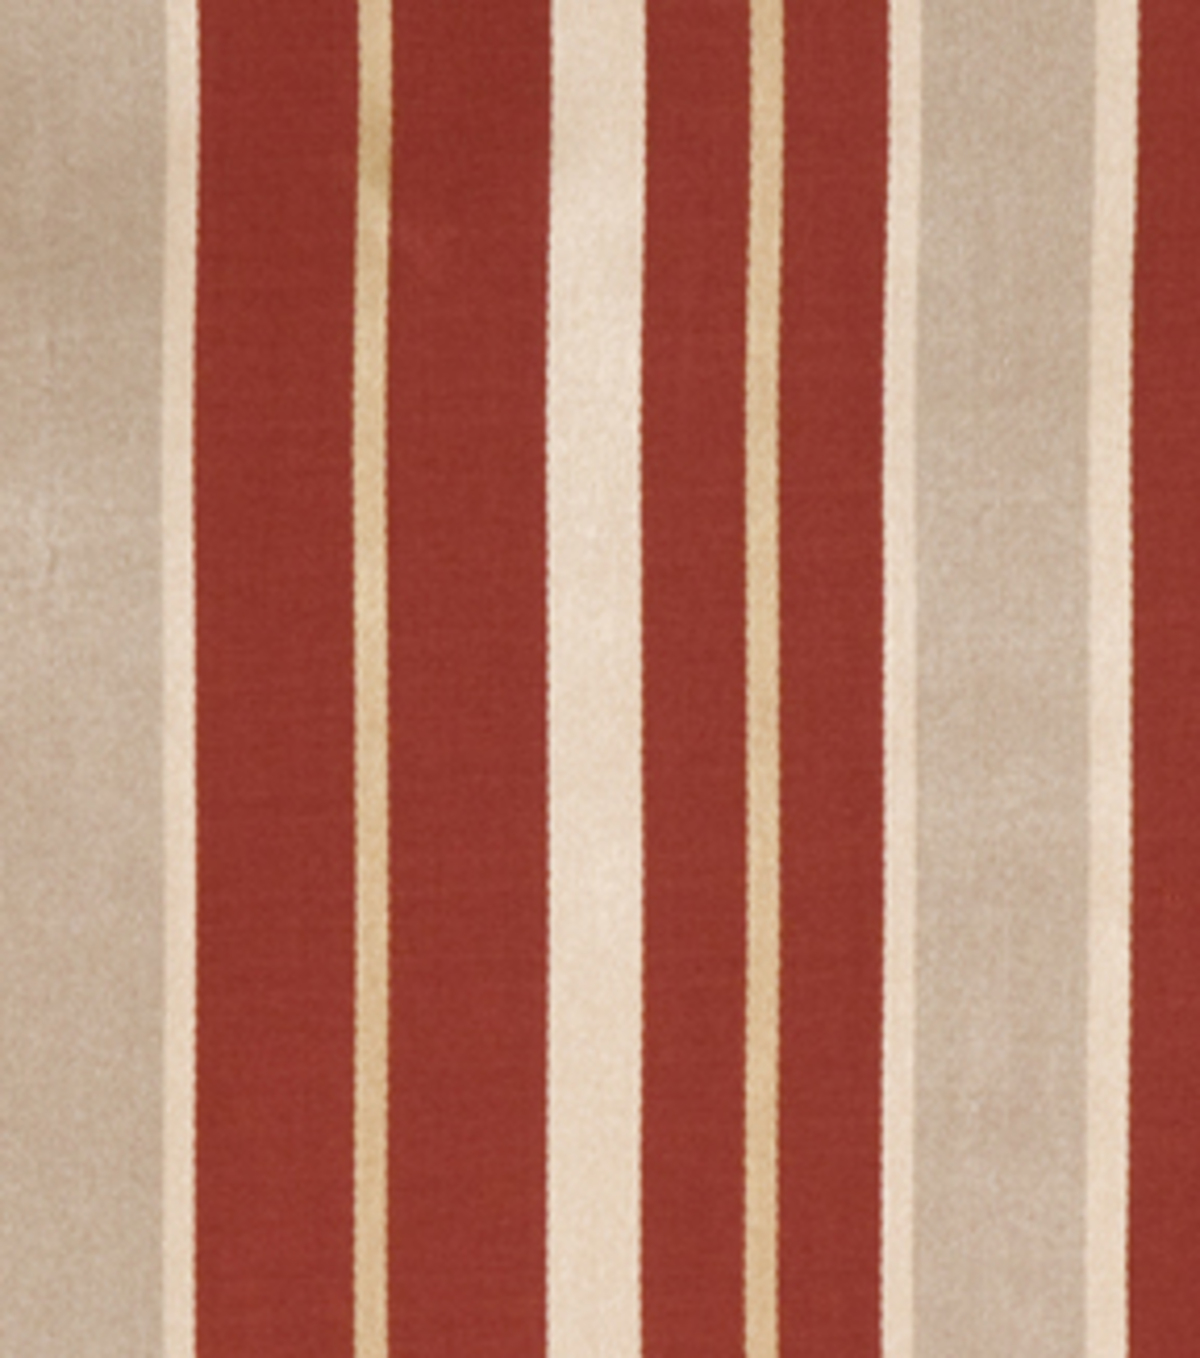 Home Decor 8\u0022x8\u0022 Fabric Swatch-Upholstery Fabric Eaton Square Praise Sangria